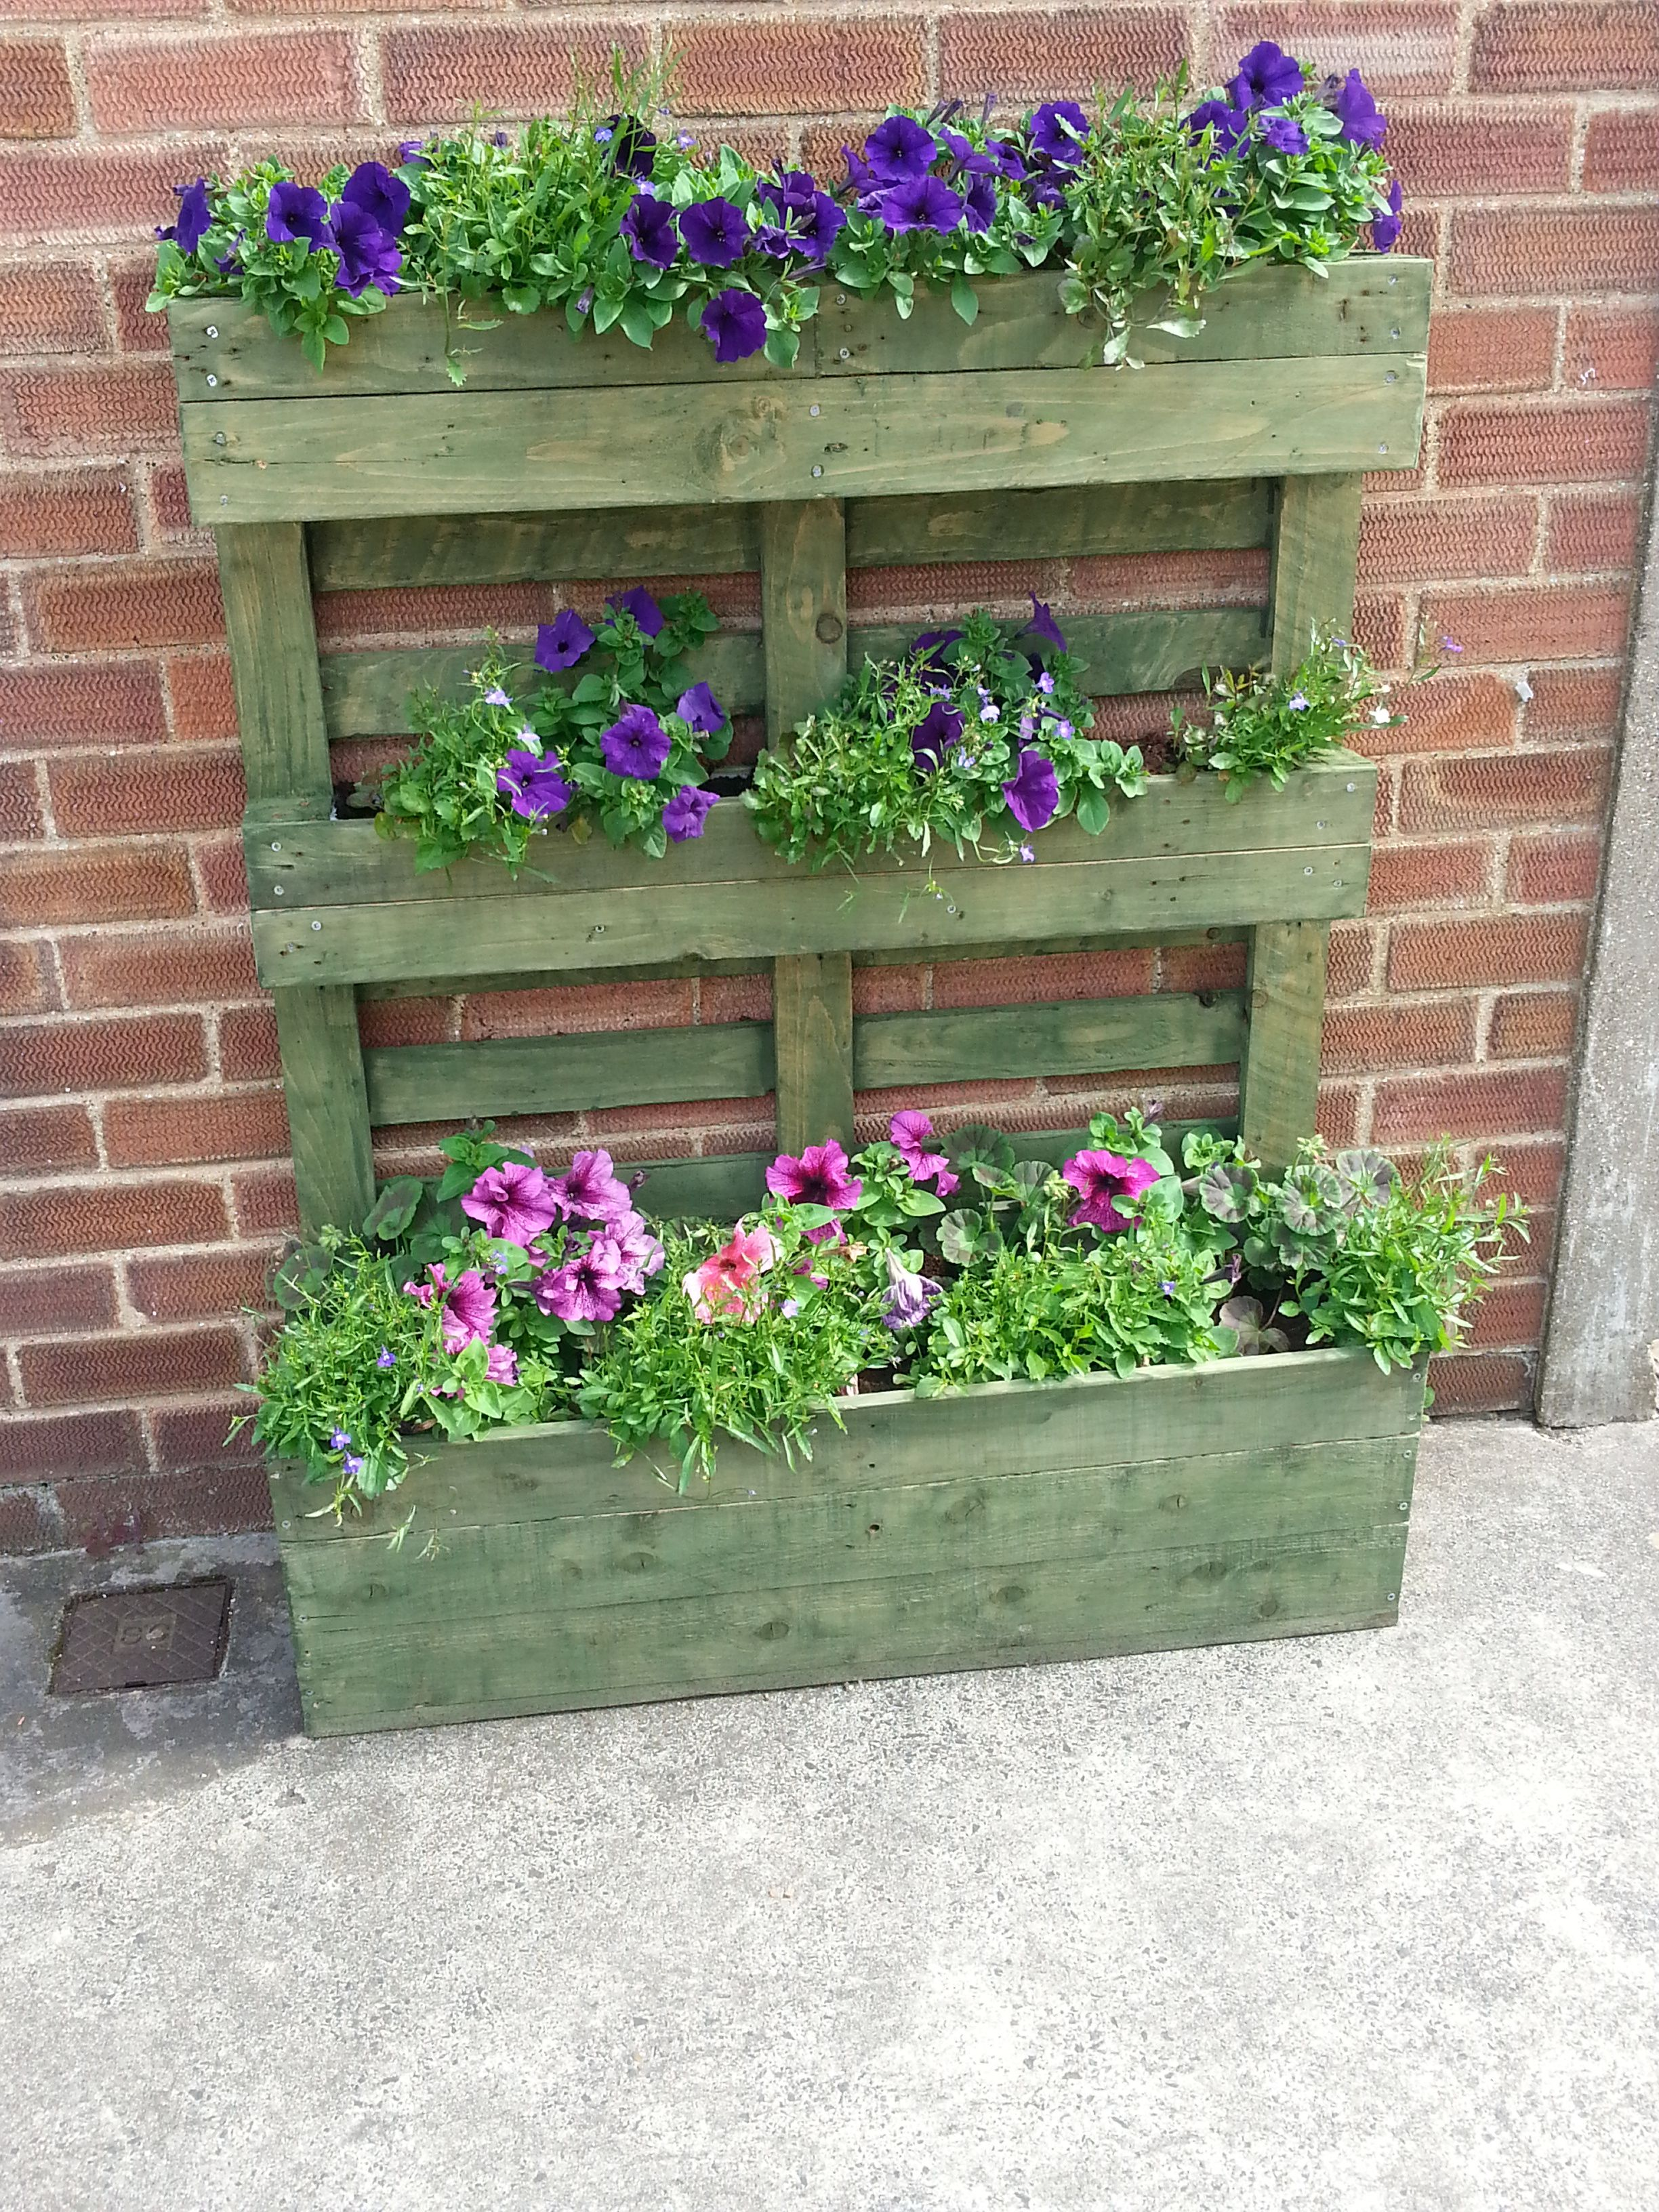 Enthralling Middle Slatsfrom Anor Pallet Screwed To M To Form Planting Troughs On Upright Pallet Planter Stained Green Pallets Blocks Used As Fixing Points Pallet Turned On Its End garden Horizontal Pallet Garden